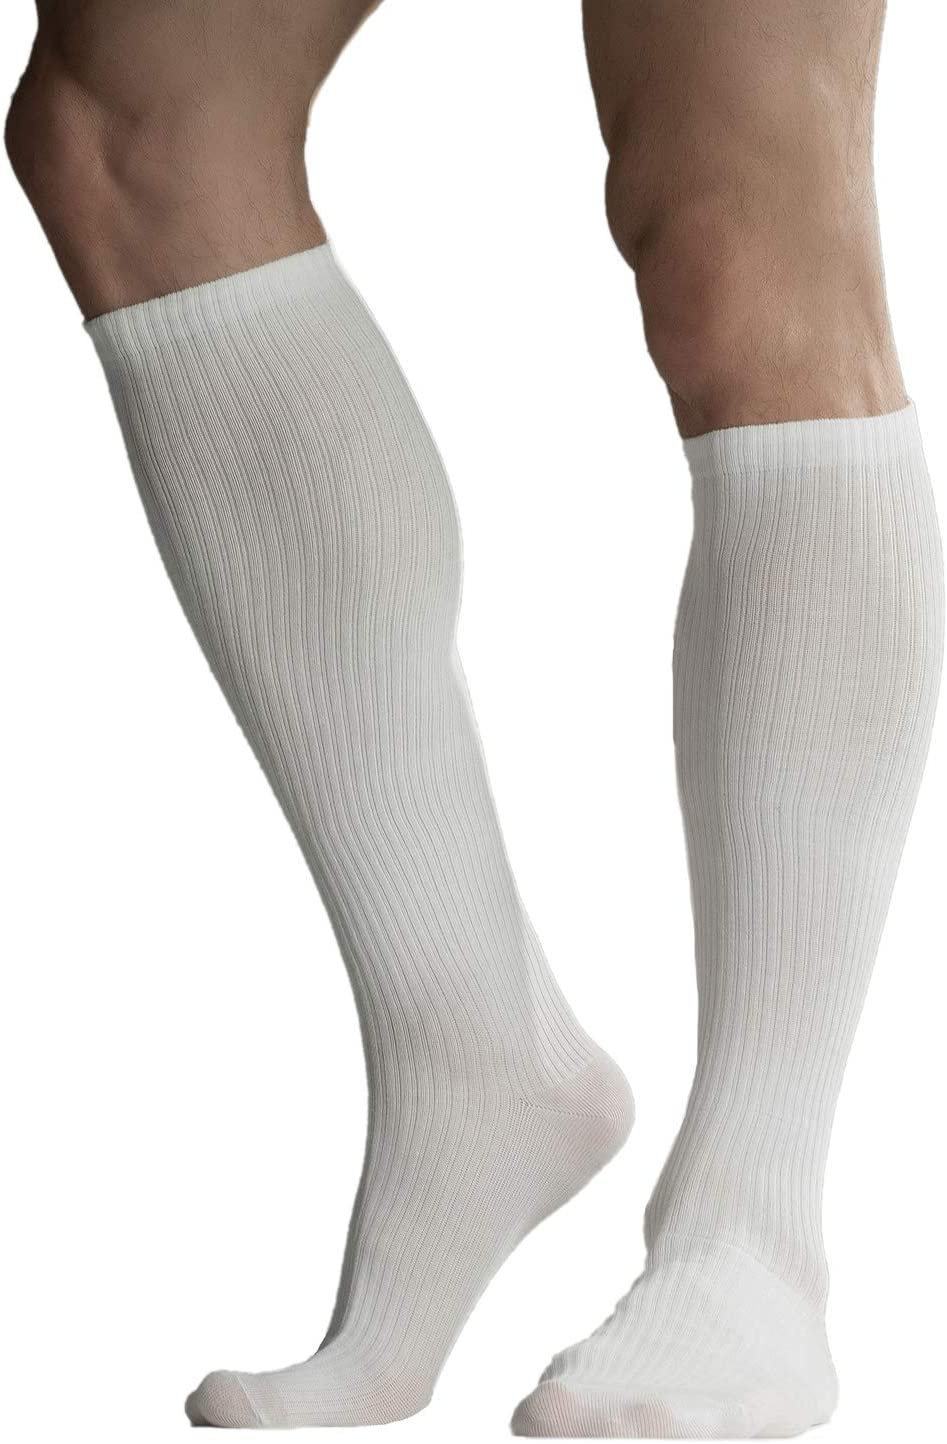 +MD Cotton Compression Socks for Circulation Men Women Inexpensive service 6 Pairs